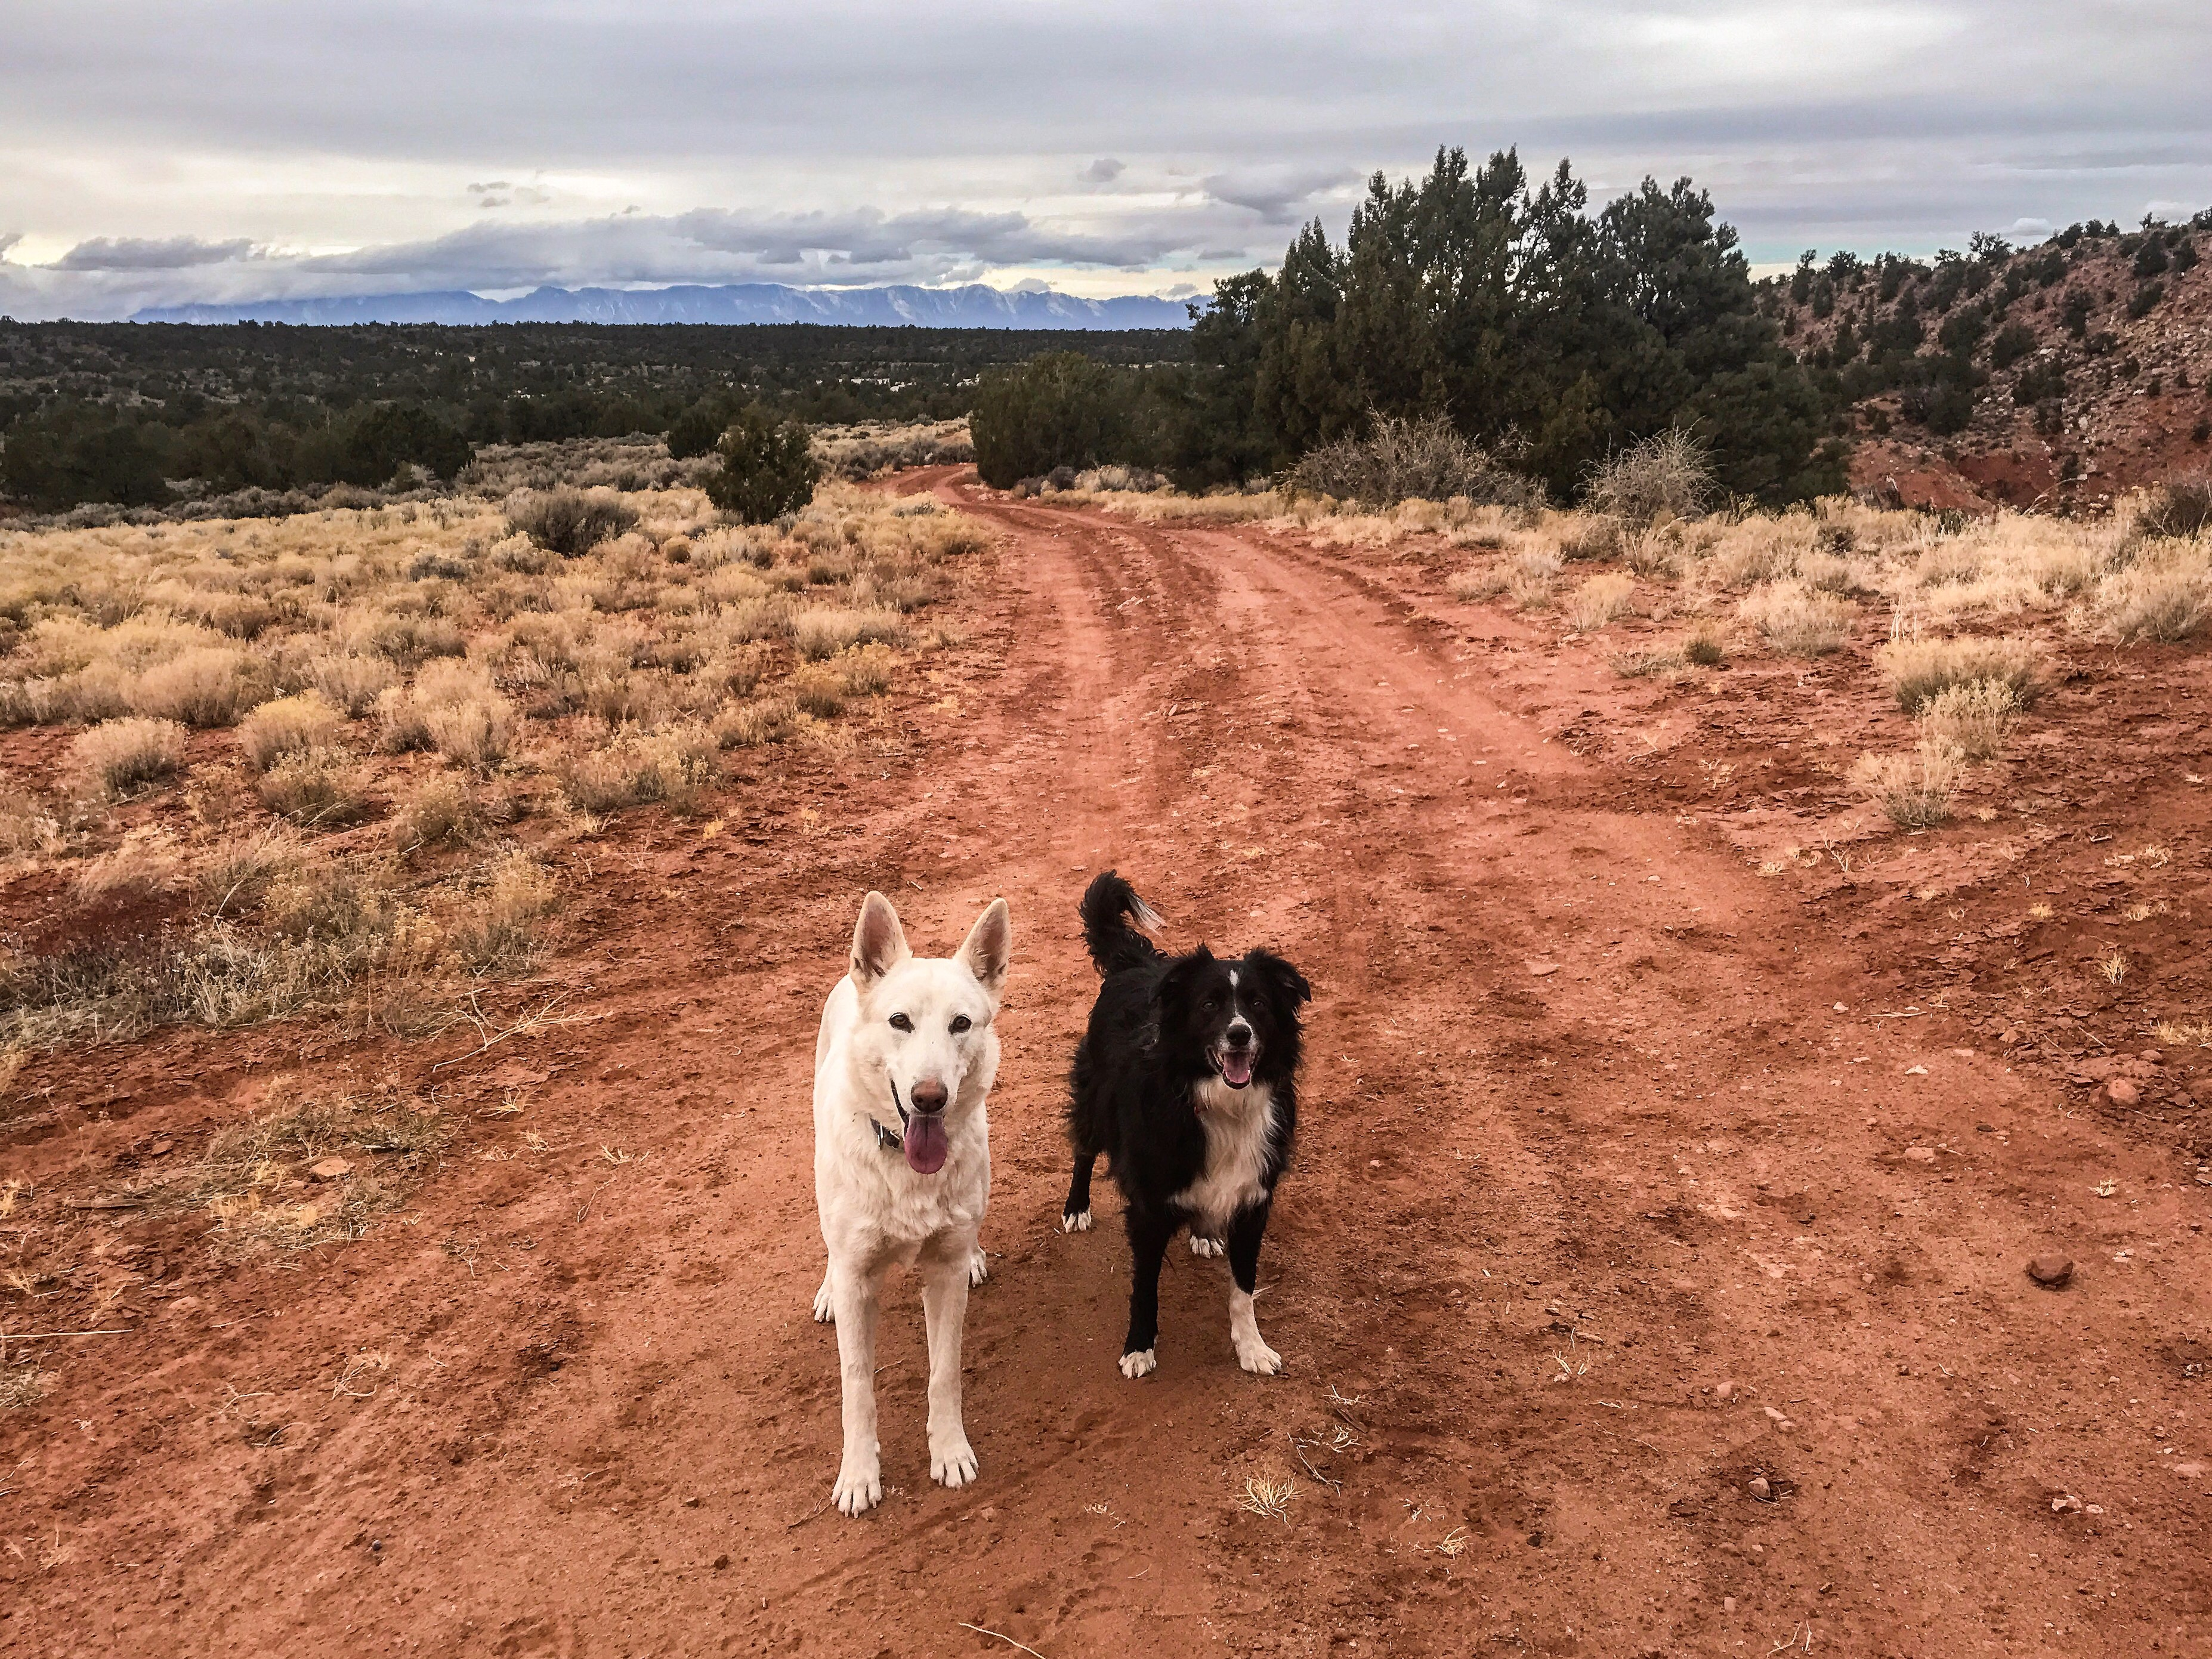 Dogs walking in Zion National Park